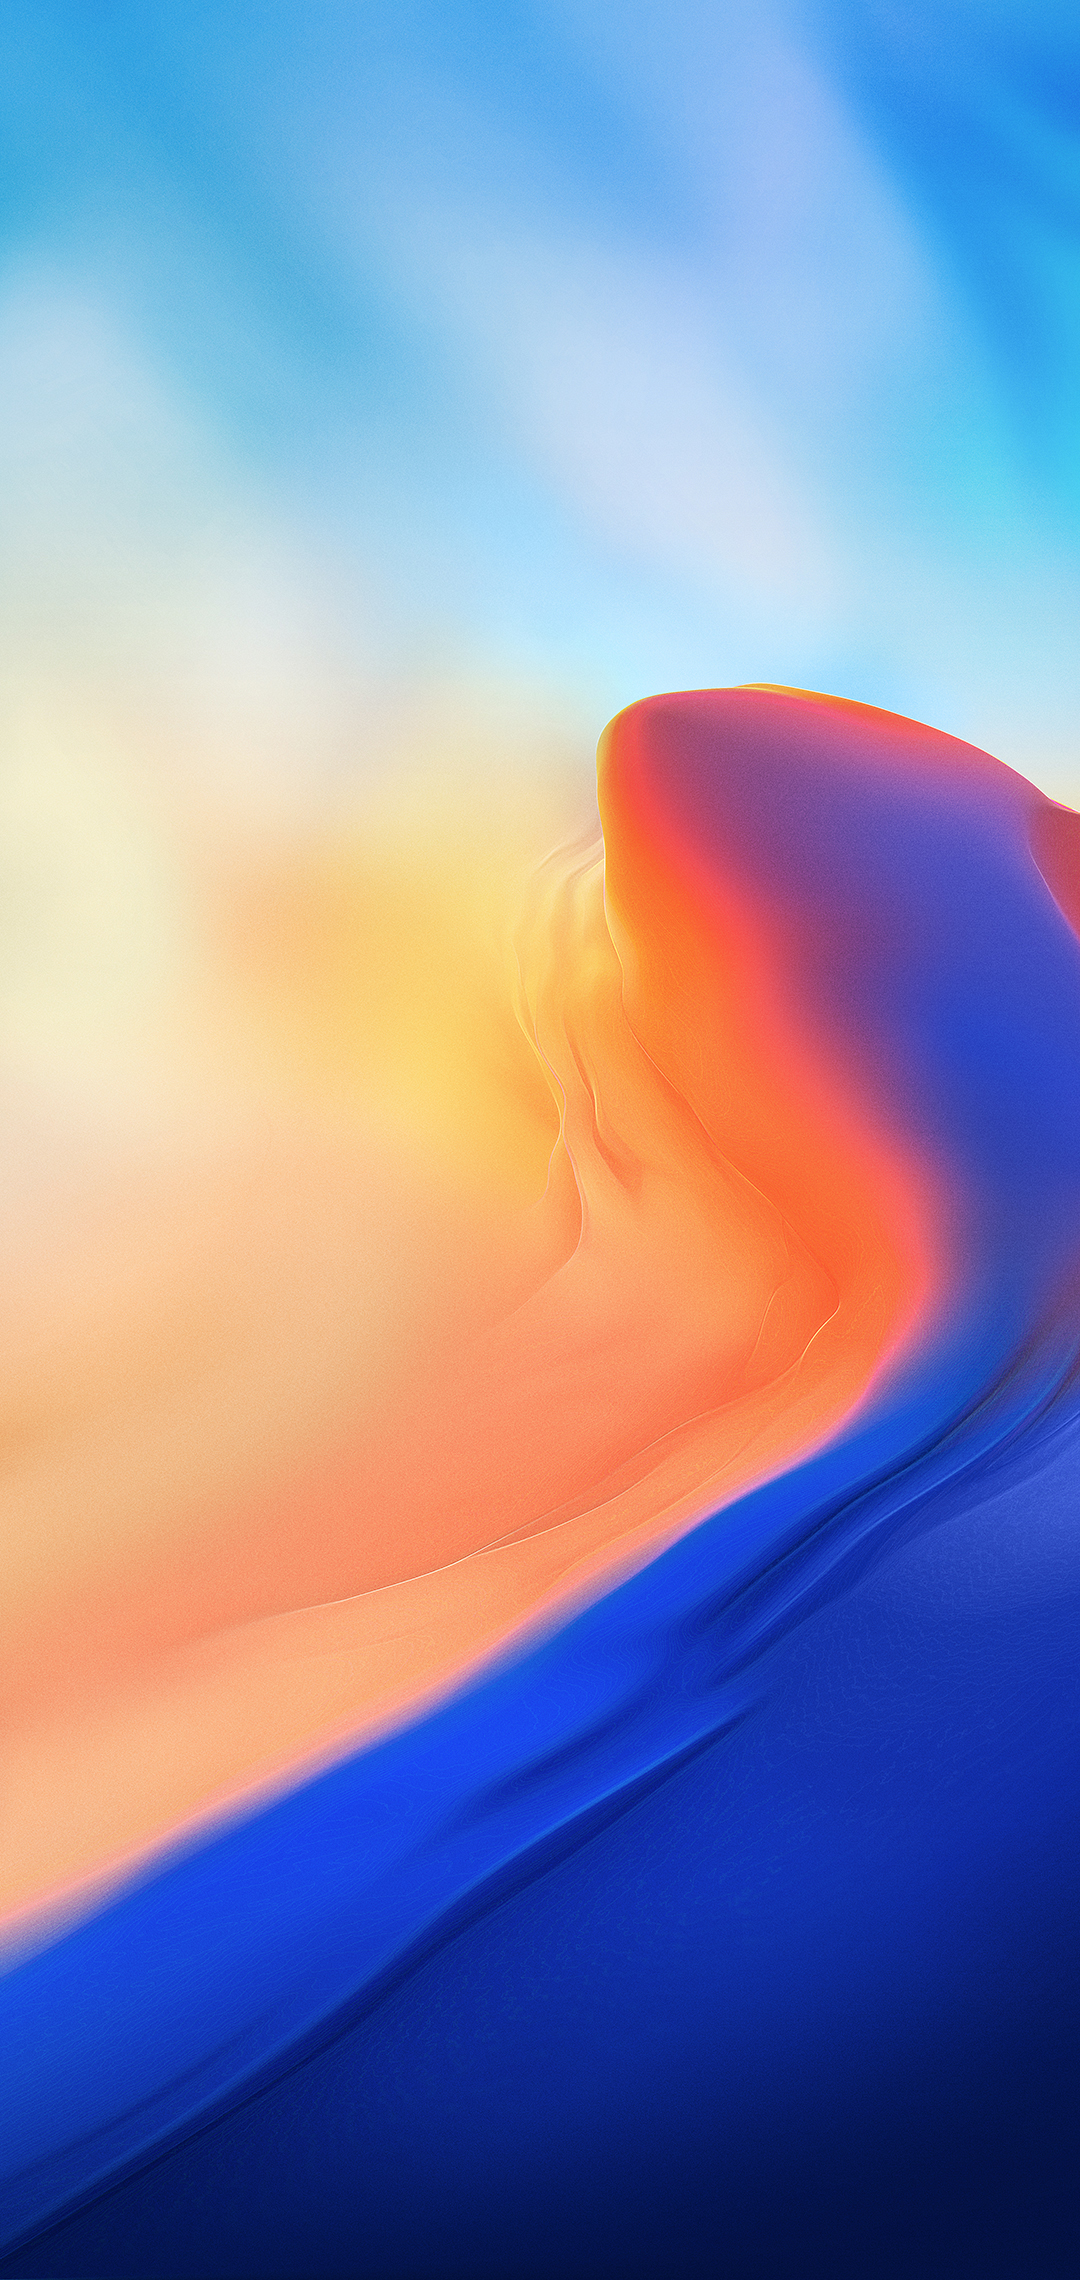 oneplus 6 wallpapers